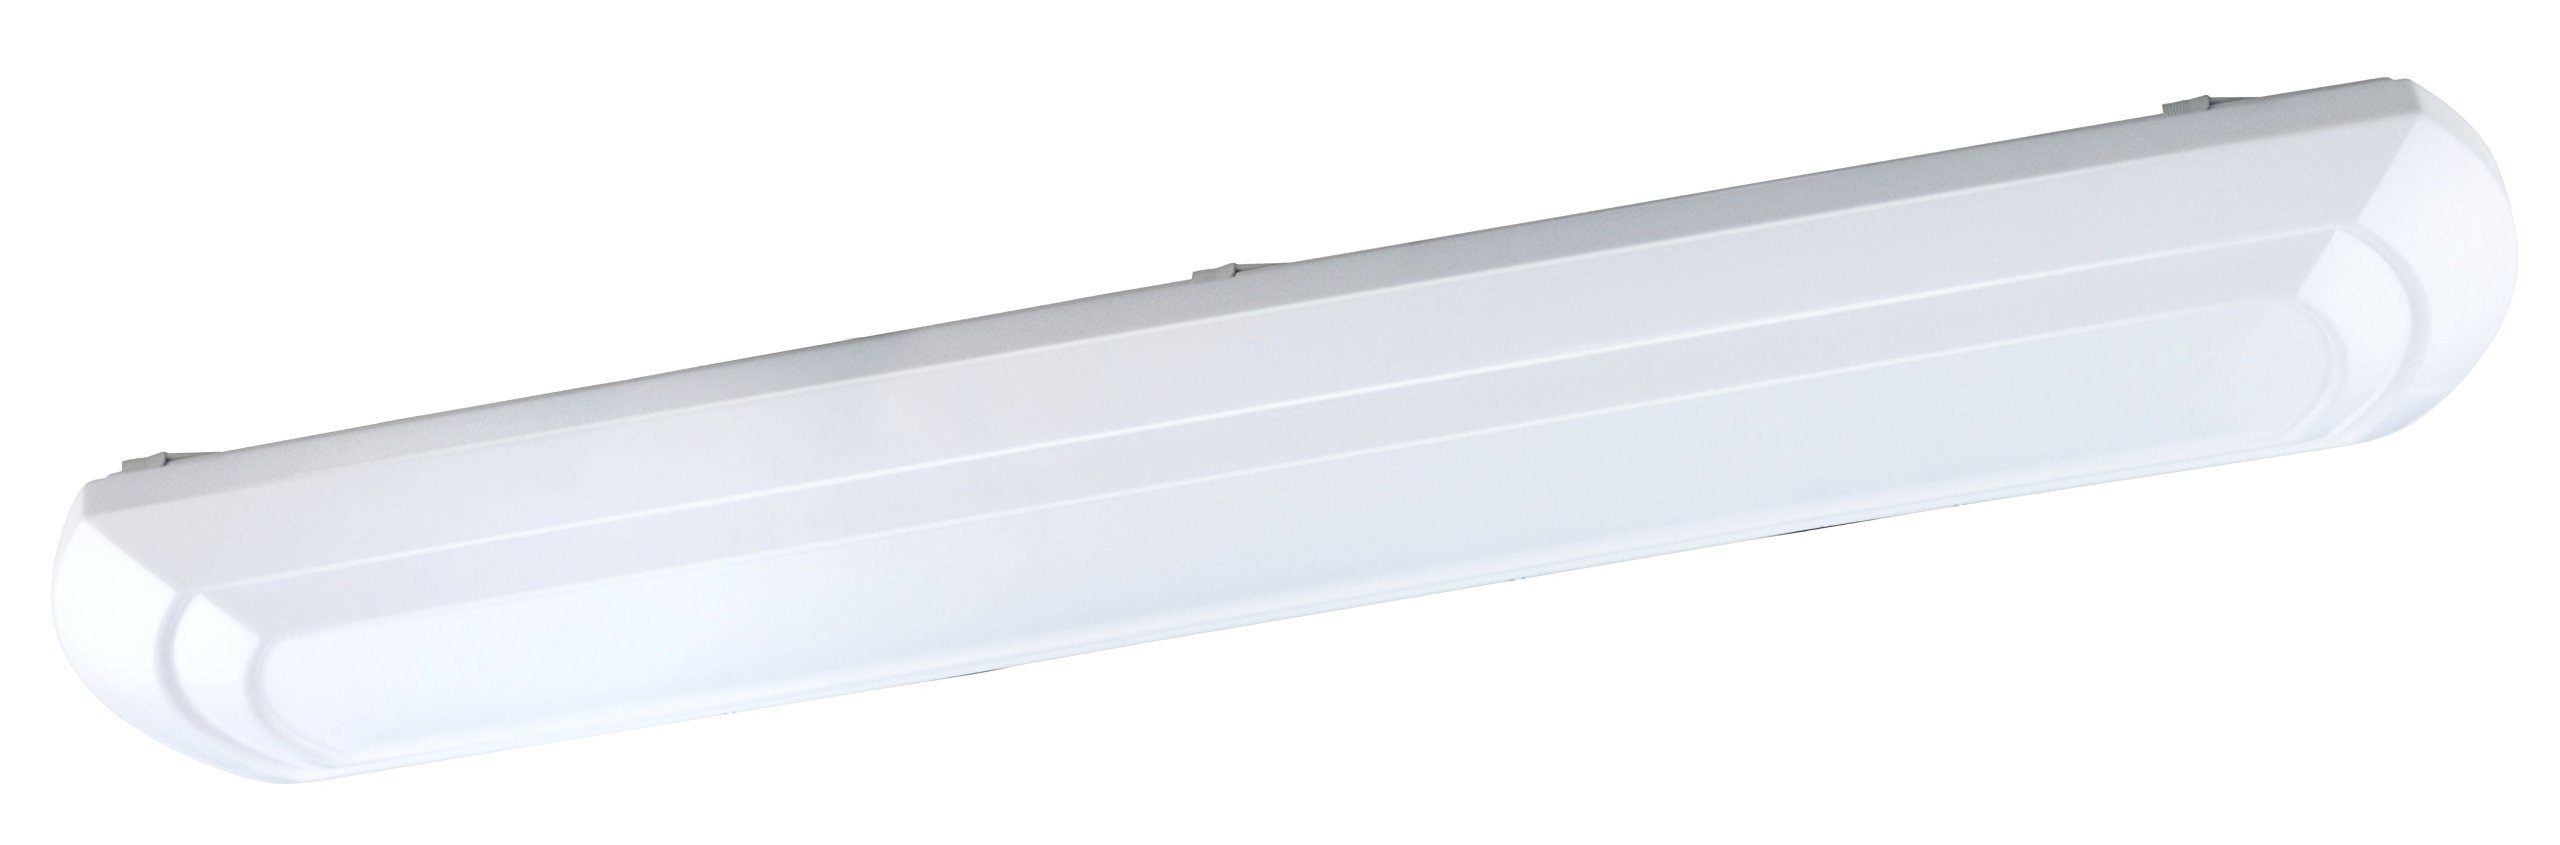 Good Earth Lighting Arched Door 48-Inch LED Linear Decorative Light - White